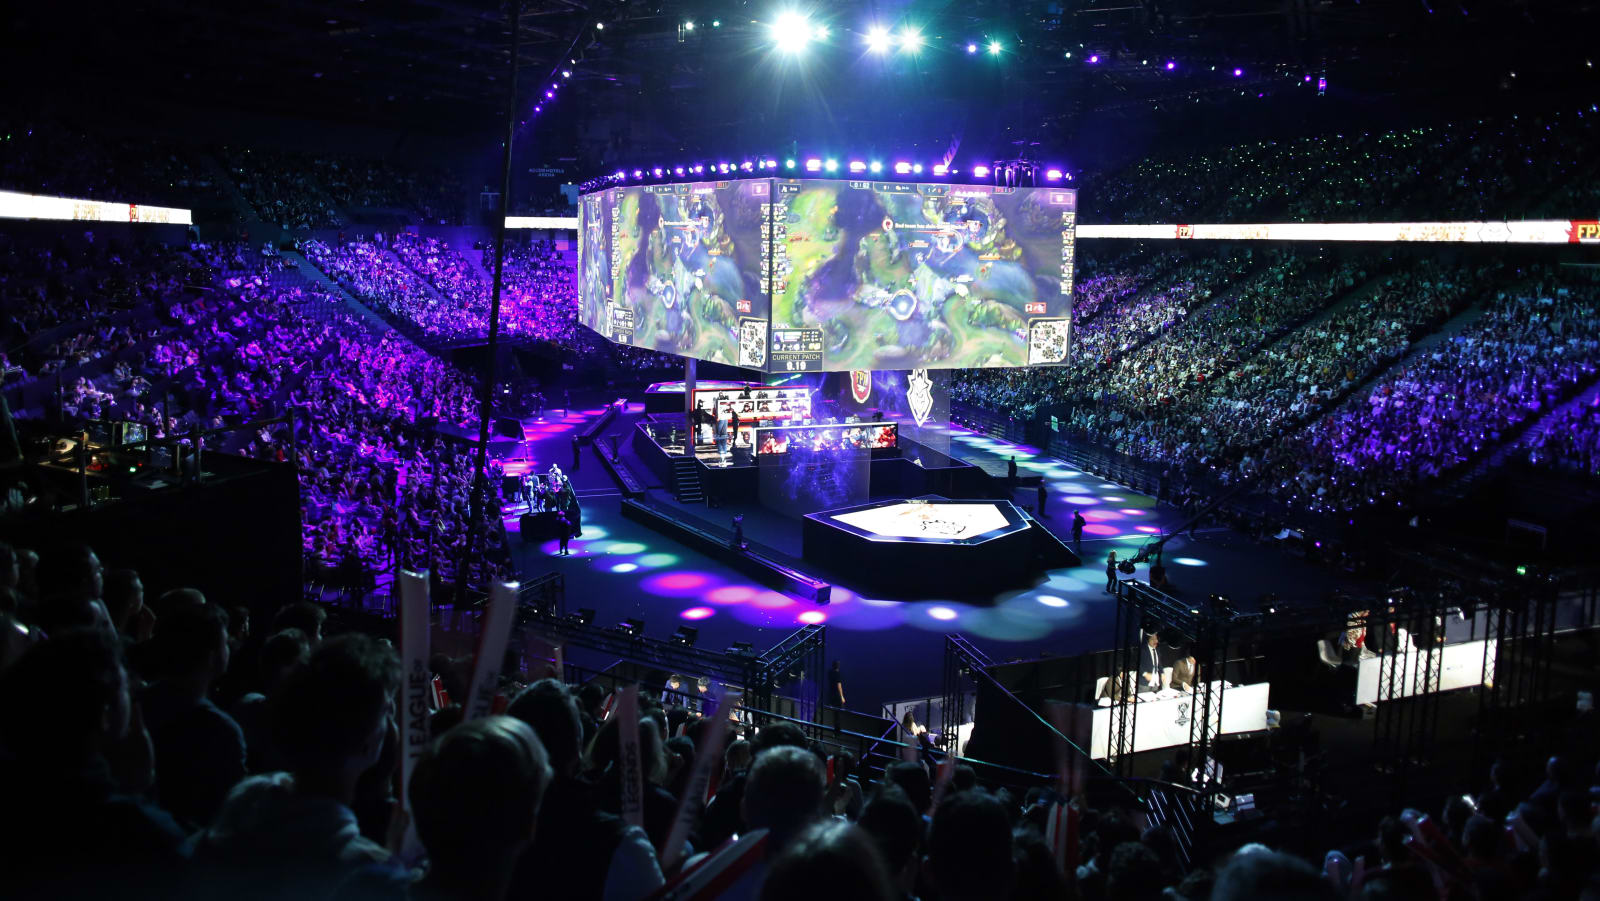 France League of Legends Finals